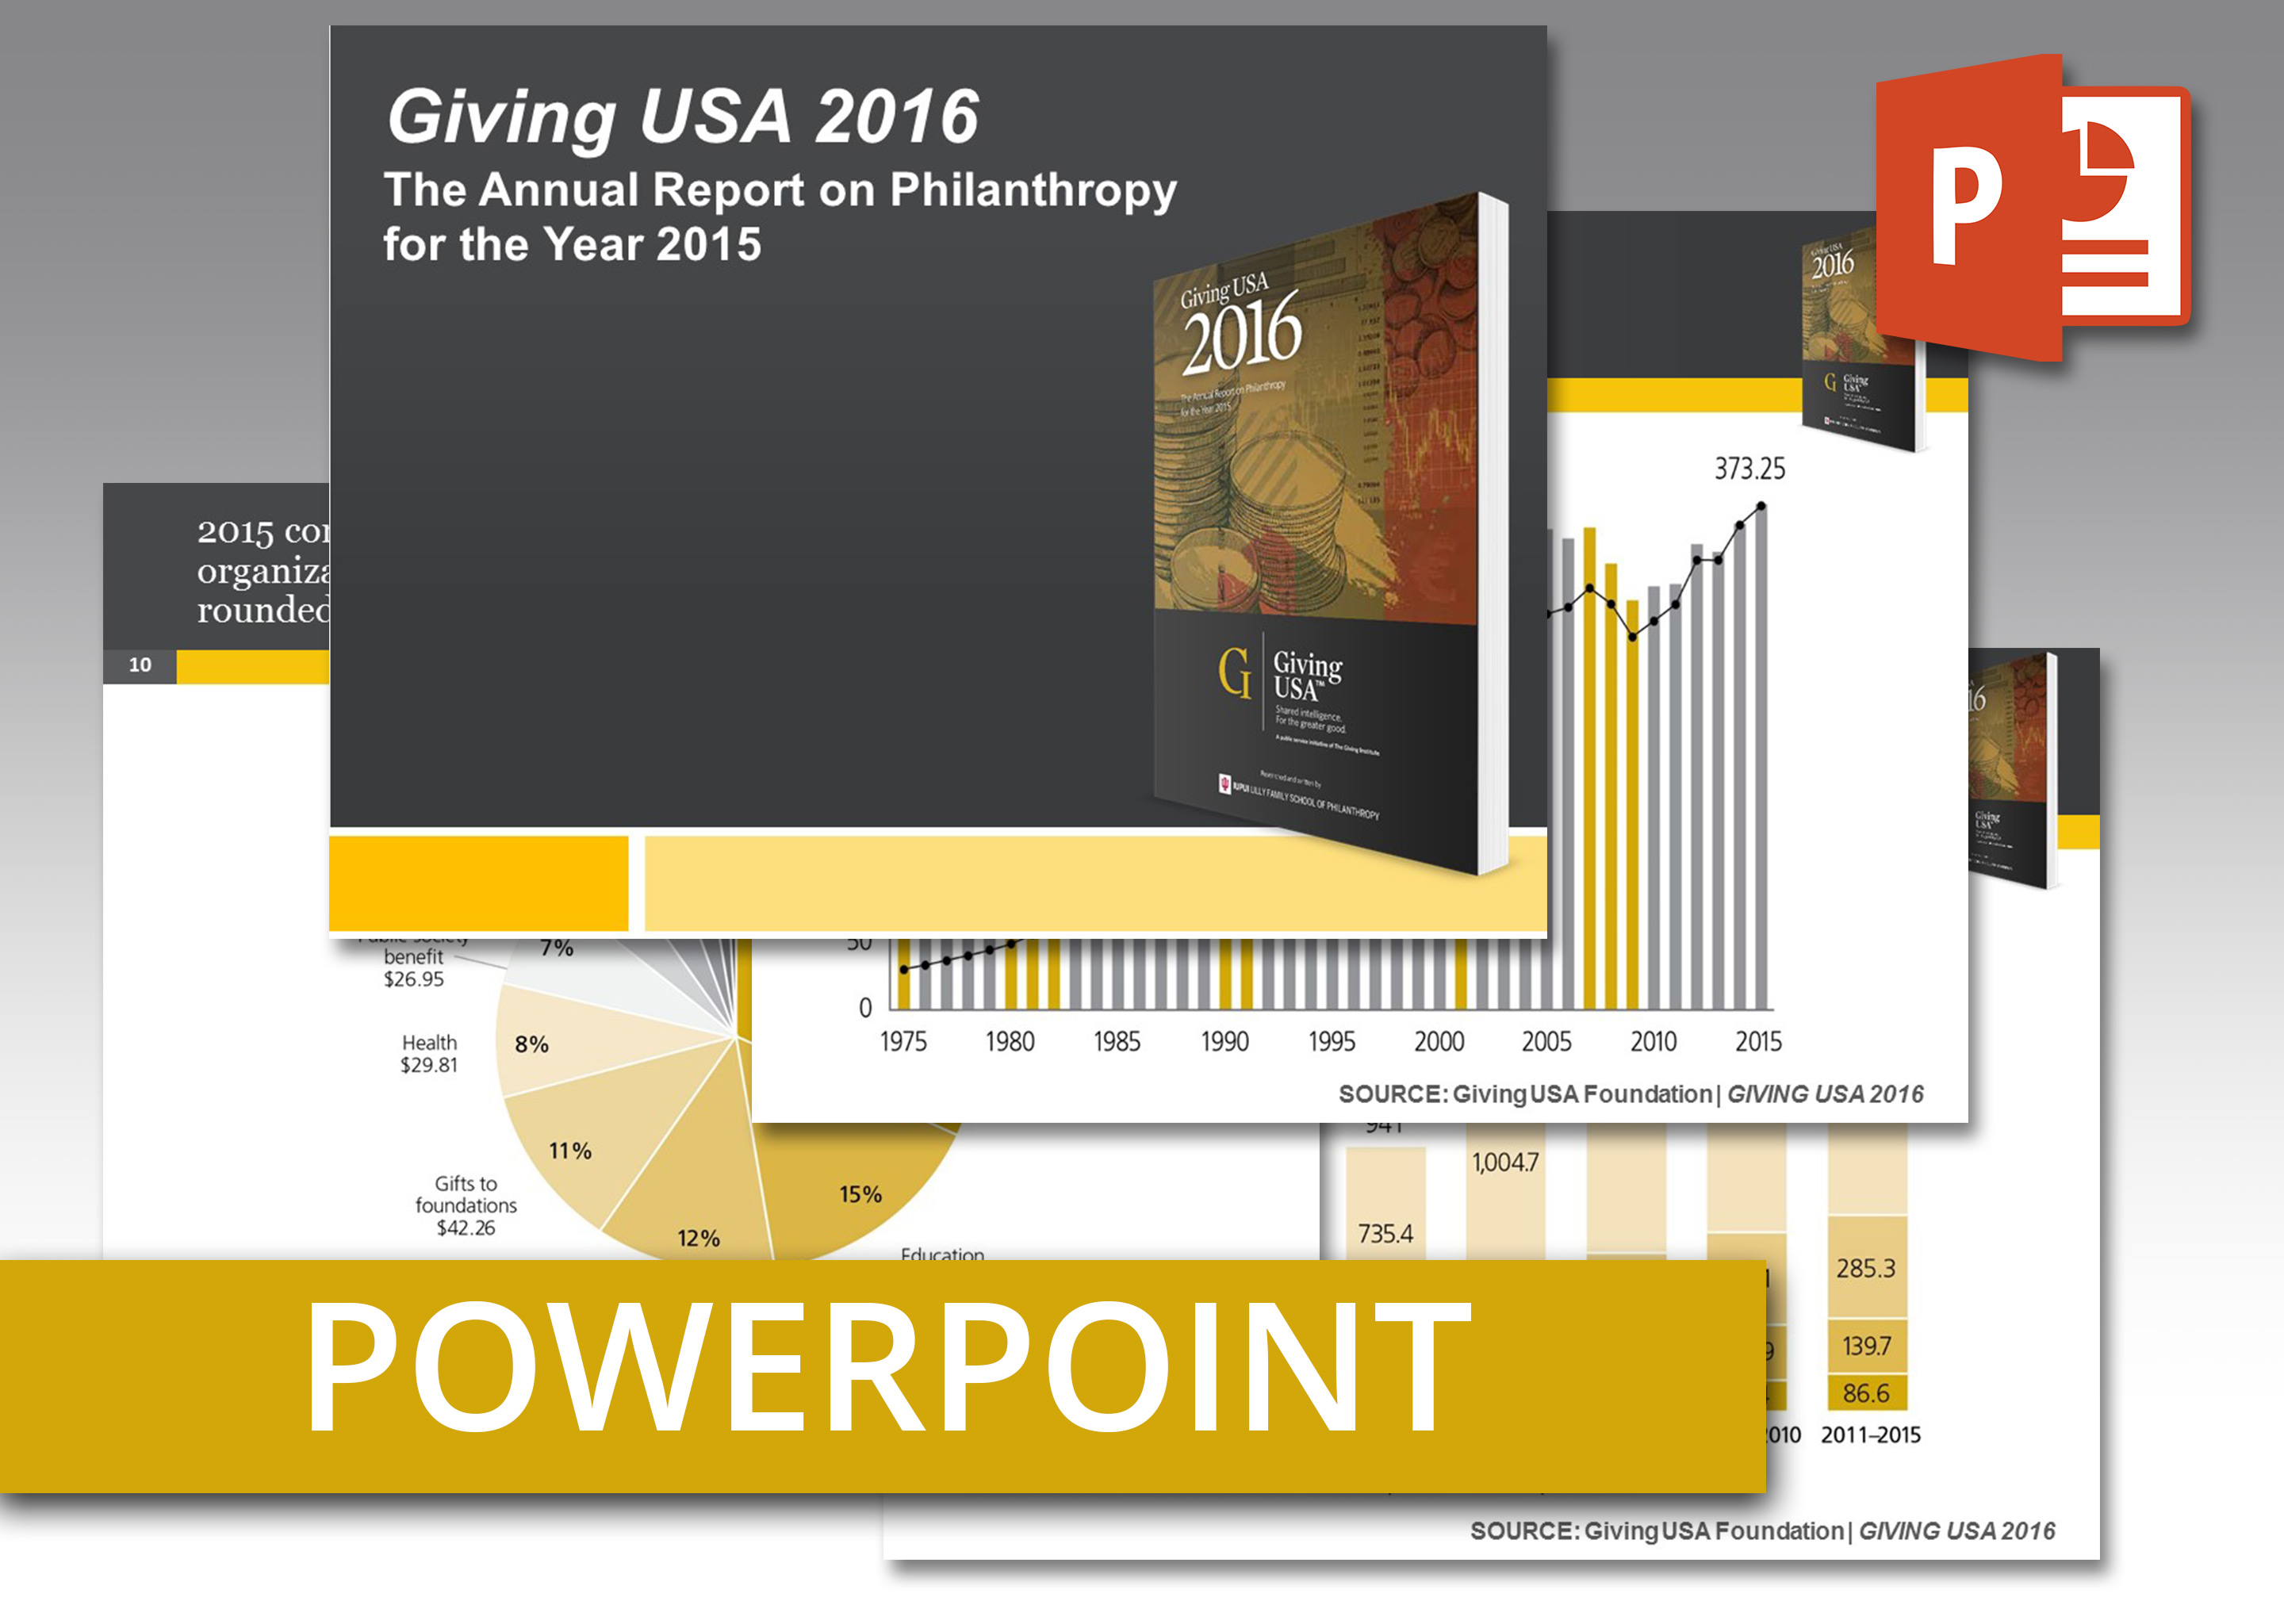 Usdgus  Personable Giving Usa  Powerpoint An Easytouse Presentation Of Report  With Heavenly Giving Usa  Powerpoint An Easytouse Presentation Of Report Findings Including Talking Points With Amazing Sound Powerpoint Presentation Also Blackboard Powerpoint Background In Addition How To Convert Powerpoint To Flash And Free Template Powerpoint Presentation As Well As Powerpoint  Convert To Video Additionally Powerpoint On Imagery From Givingusaorg With Usdgus  Heavenly Giving Usa  Powerpoint An Easytouse Presentation Of Report  With Amazing Giving Usa  Powerpoint An Easytouse Presentation Of Report Findings Including Talking Points And Personable Sound Powerpoint Presentation Also Blackboard Powerpoint Background In Addition How To Convert Powerpoint To Flash From Givingusaorg